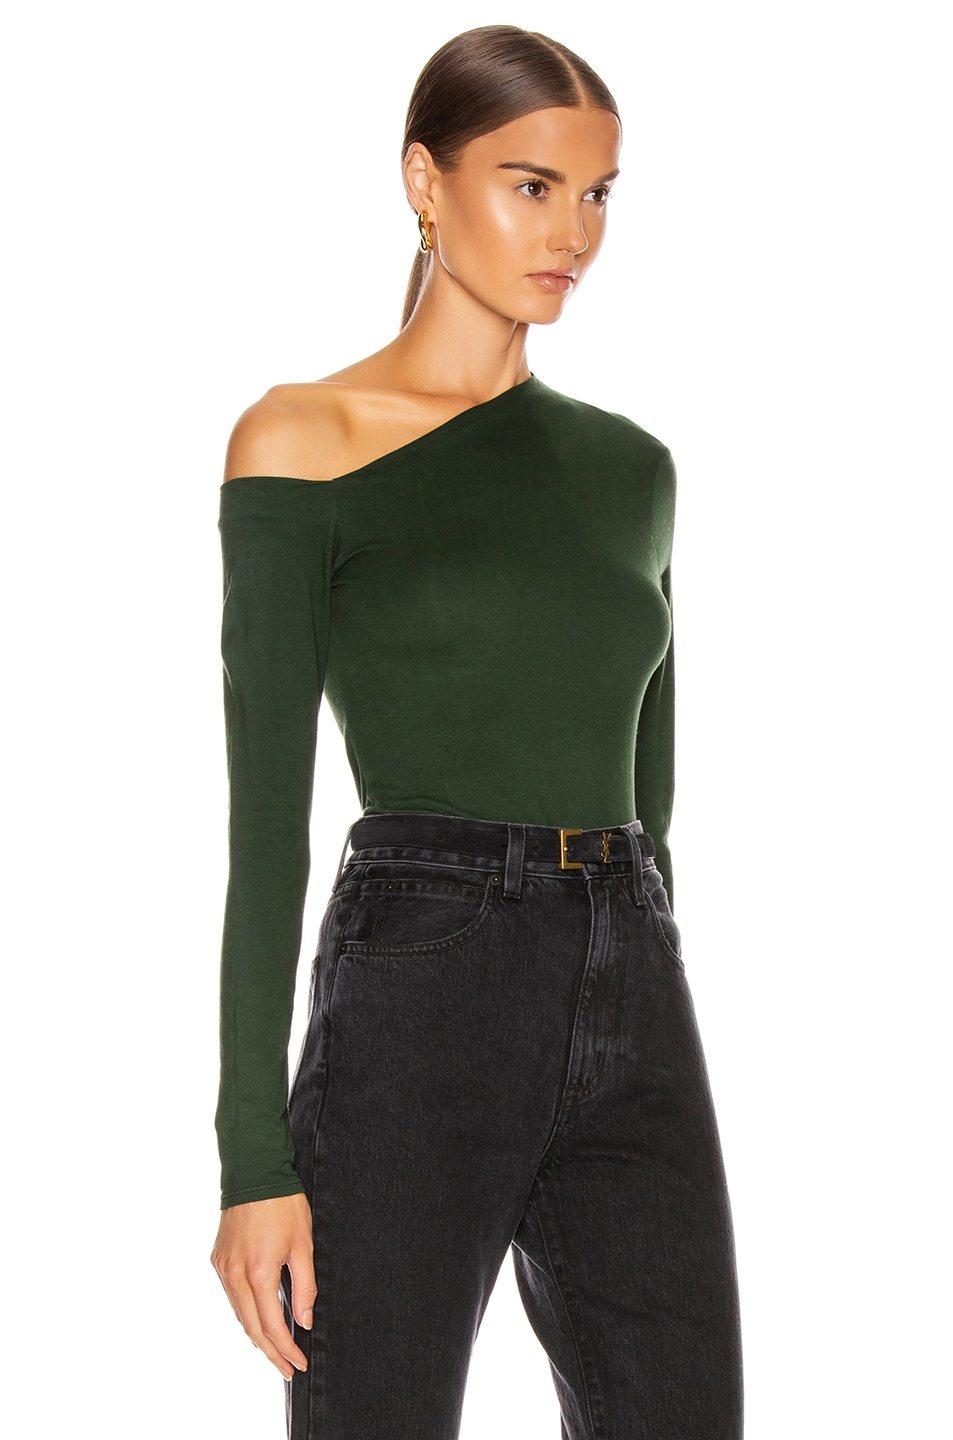 Image 2 of Enza Costa Angled Exposed Shoulder Long Sleeve Top in Evergreen